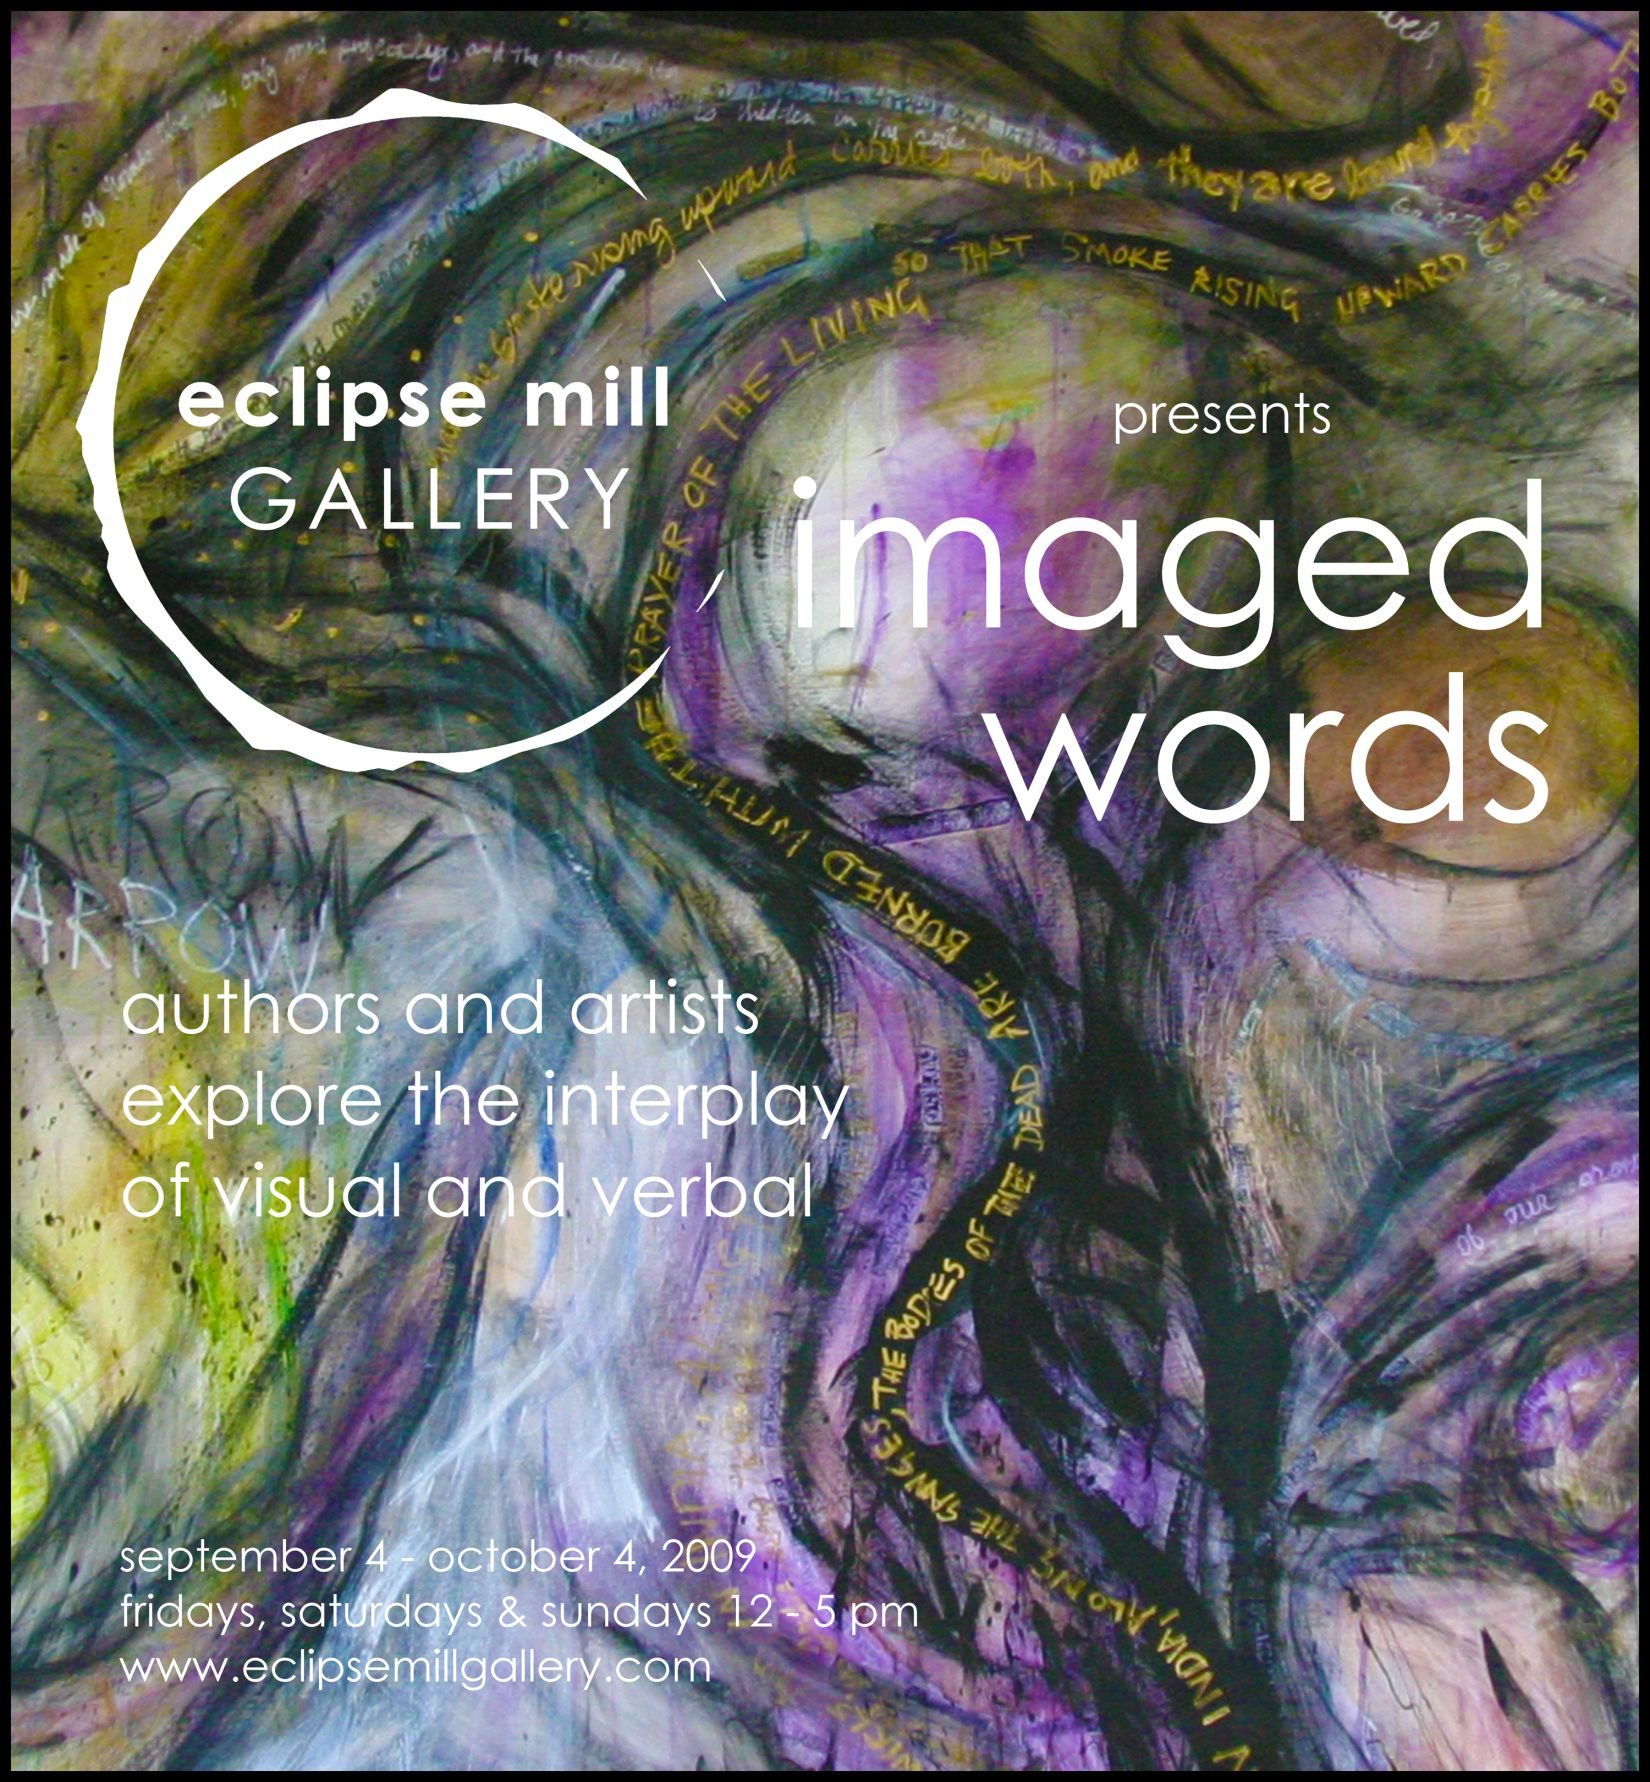 About the eclipse mill with images eclipse artist